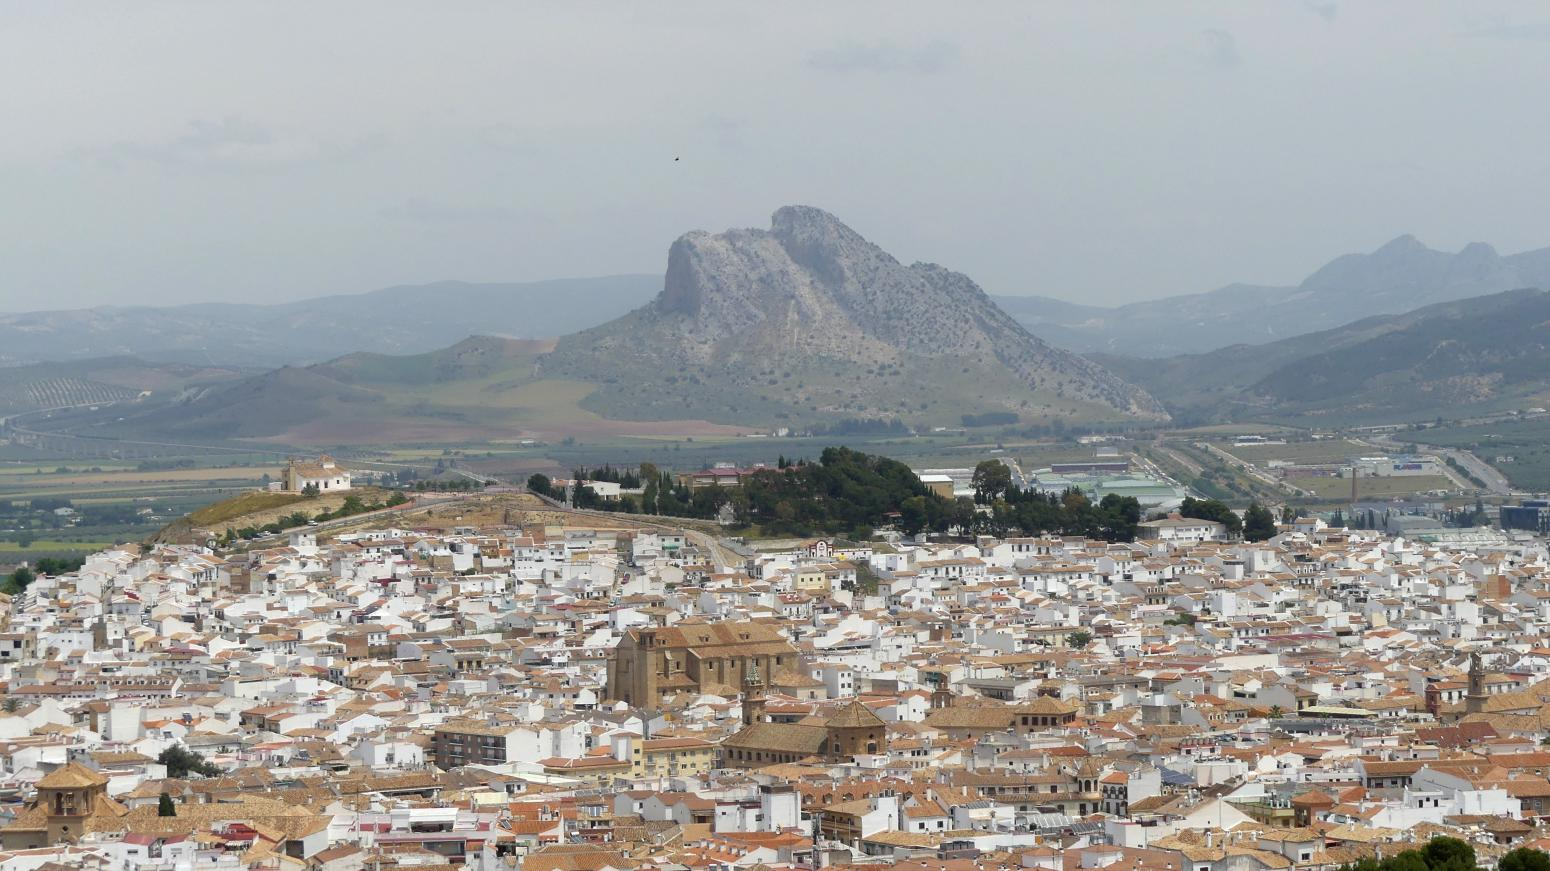 GR 249.4. Section Stage 2. Antequera and the Rock of the Lovers (Peña de los Enamorados) emerging from the Plains